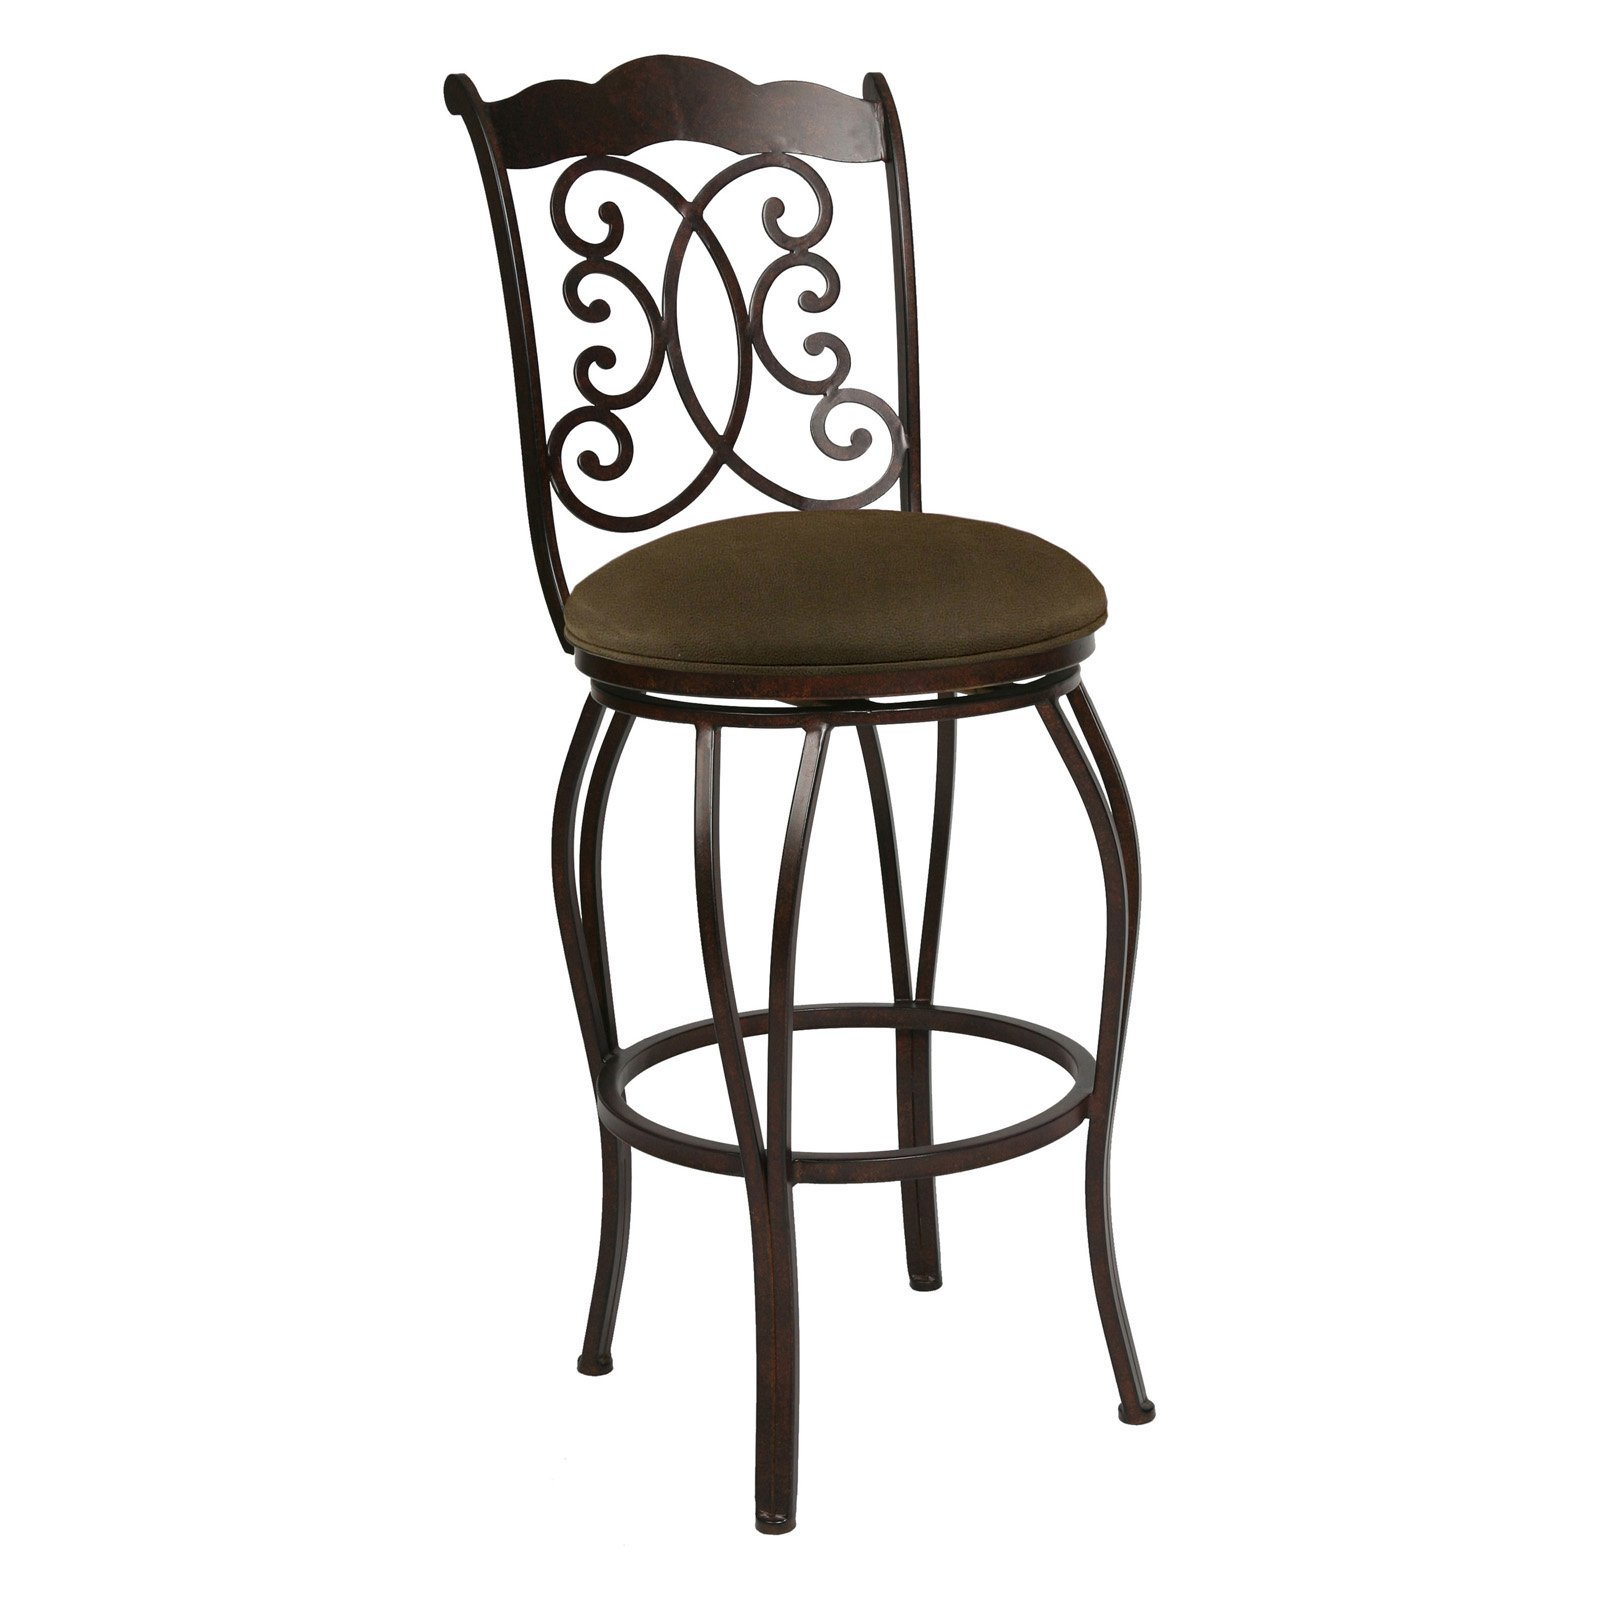 "Pastel Furniture Athena 30"" Swivel Bar Stool in Florentine Coffee by Impacterra"